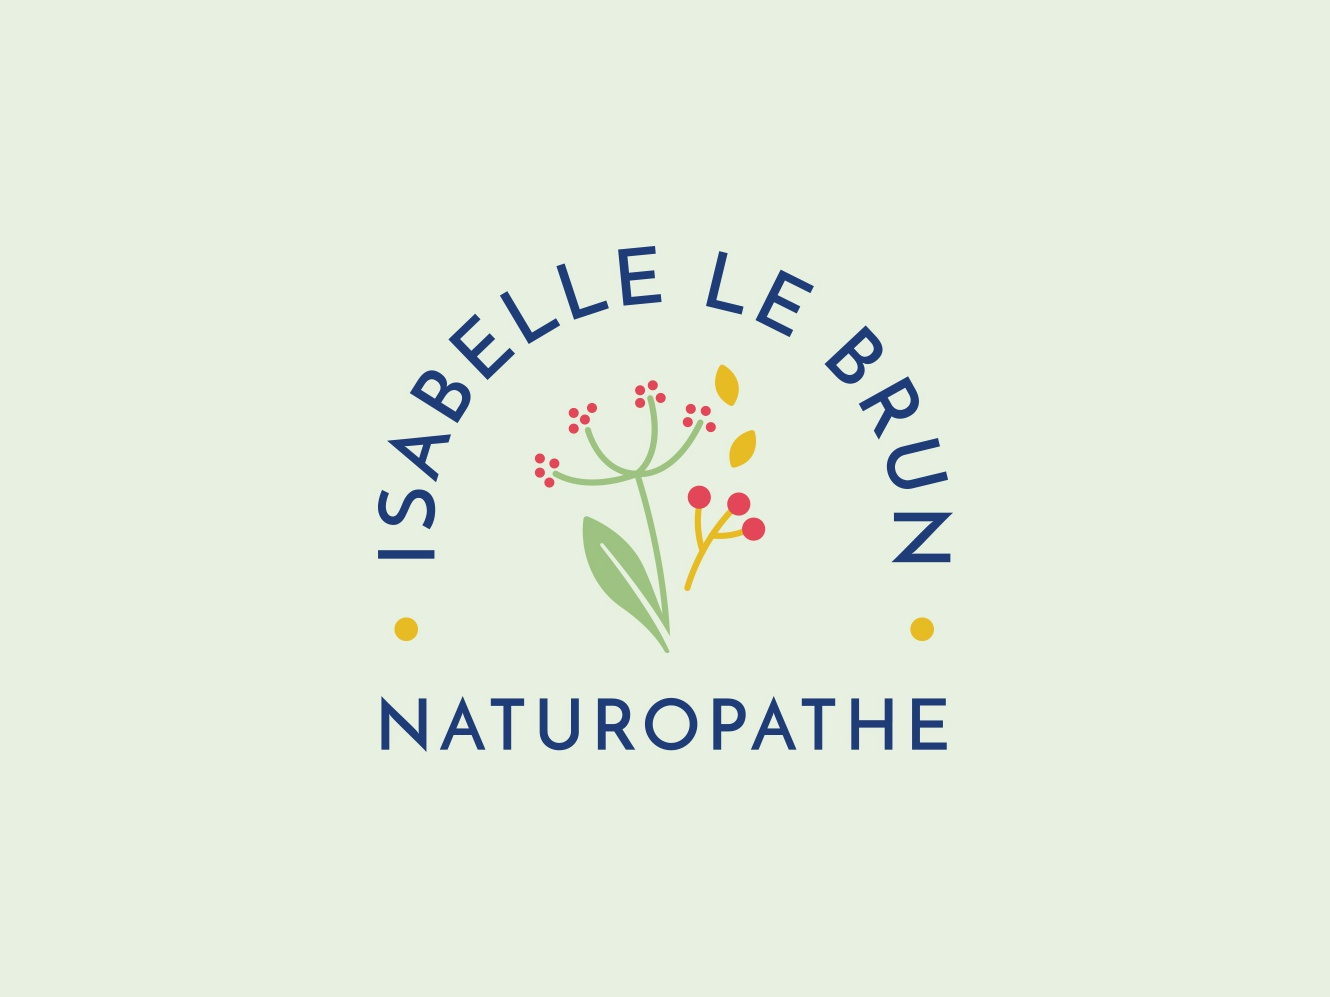 Isabelle Le Brun Logo by Carole Chevalier on Dribbble